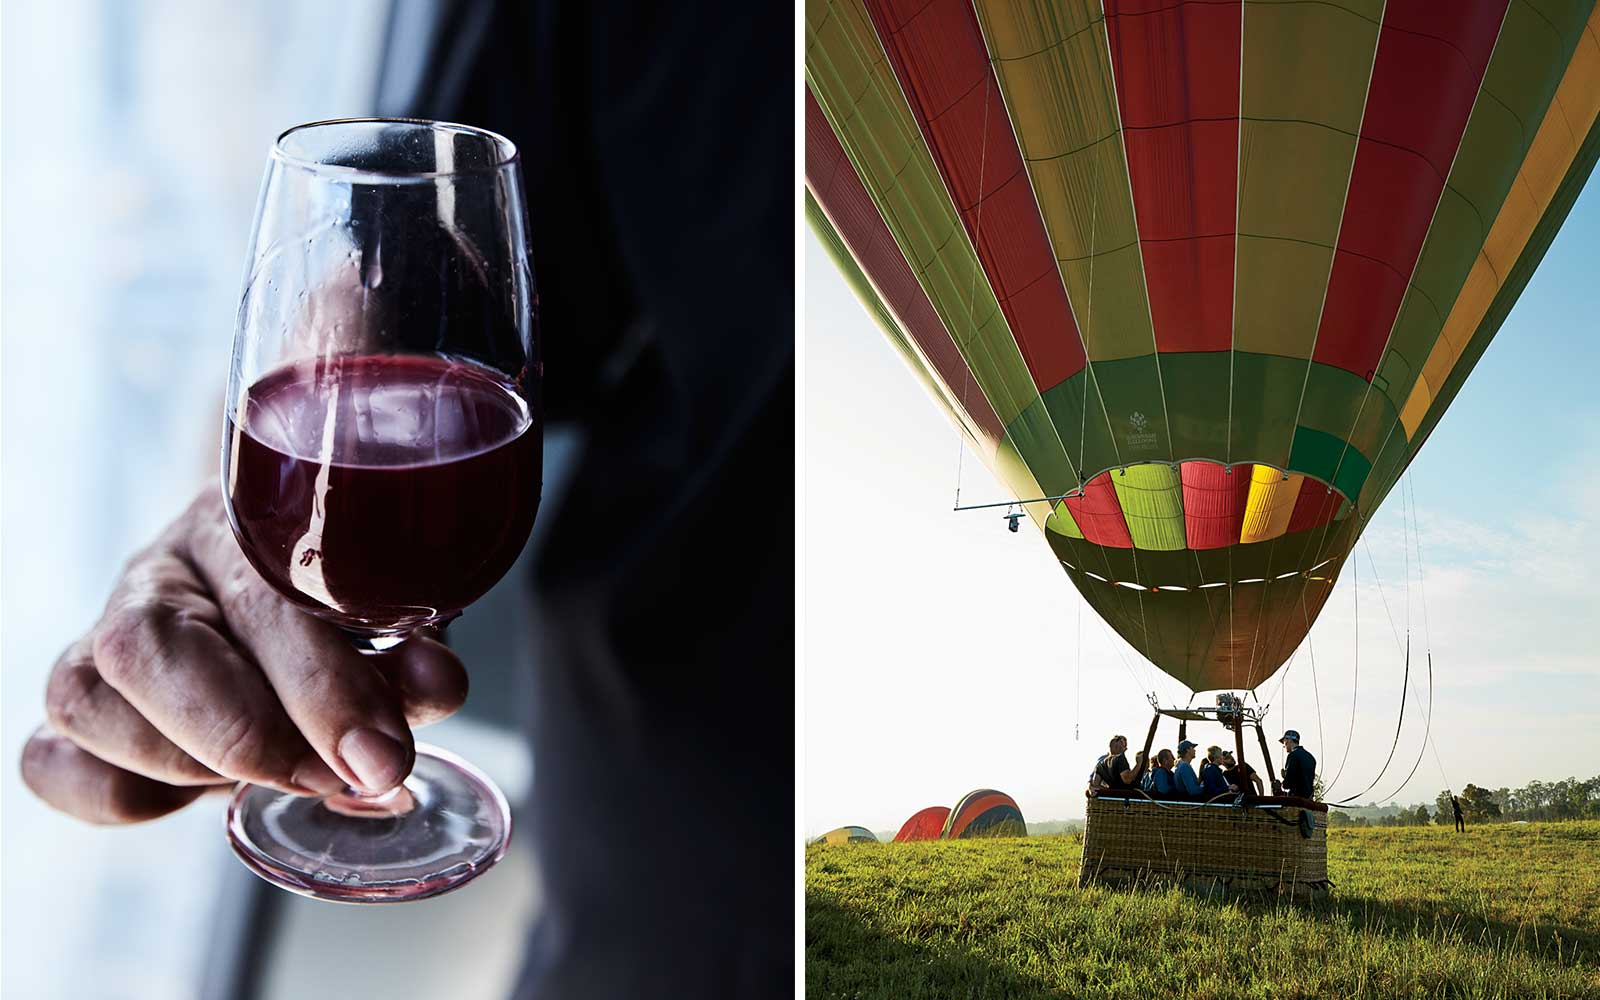 Wine and hot air balloons in Hunter Valley region, NSW, Australia